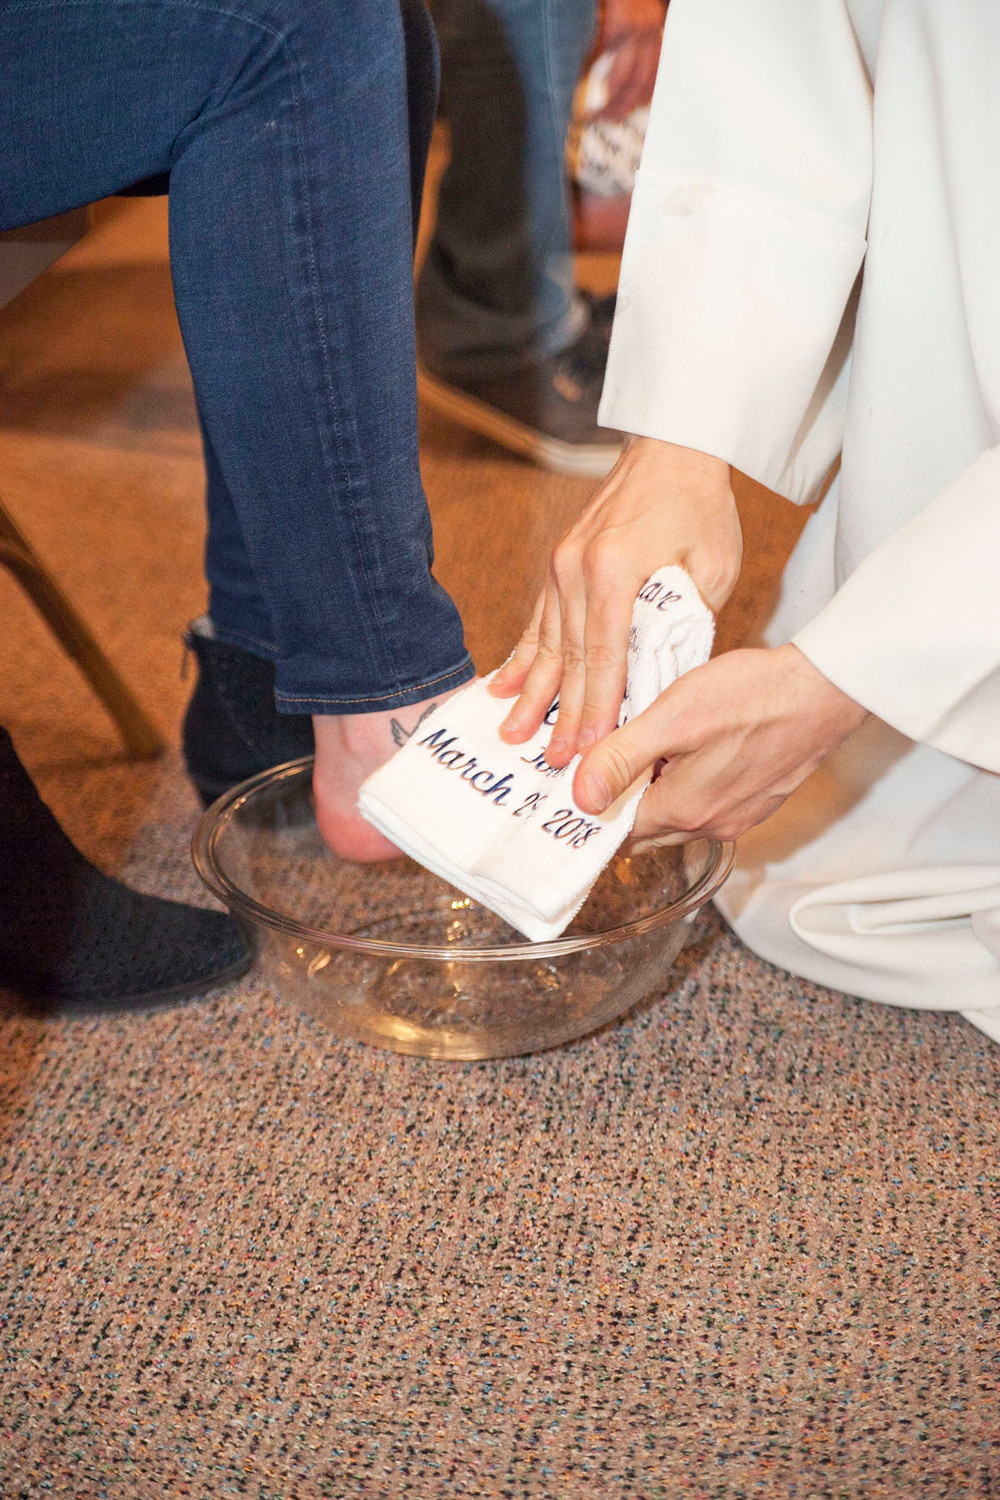 A foot of another parishioner is washed during the Holy Thursday rite at St. Denis.